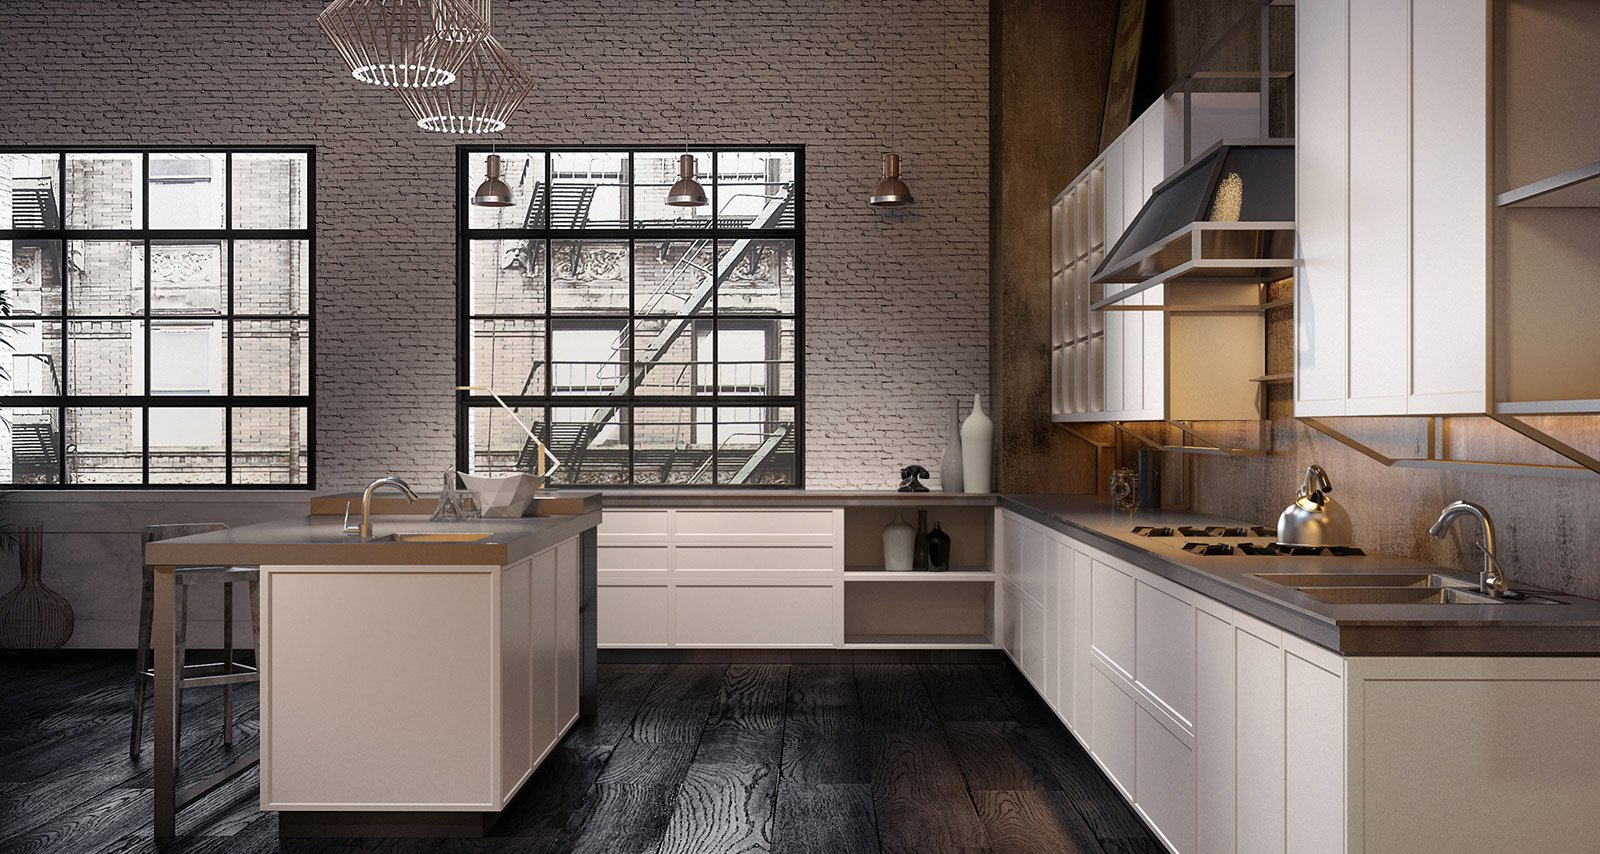 Awesome Cucine Classiche Snaidero Gallery - acrylicgiftware.us ...